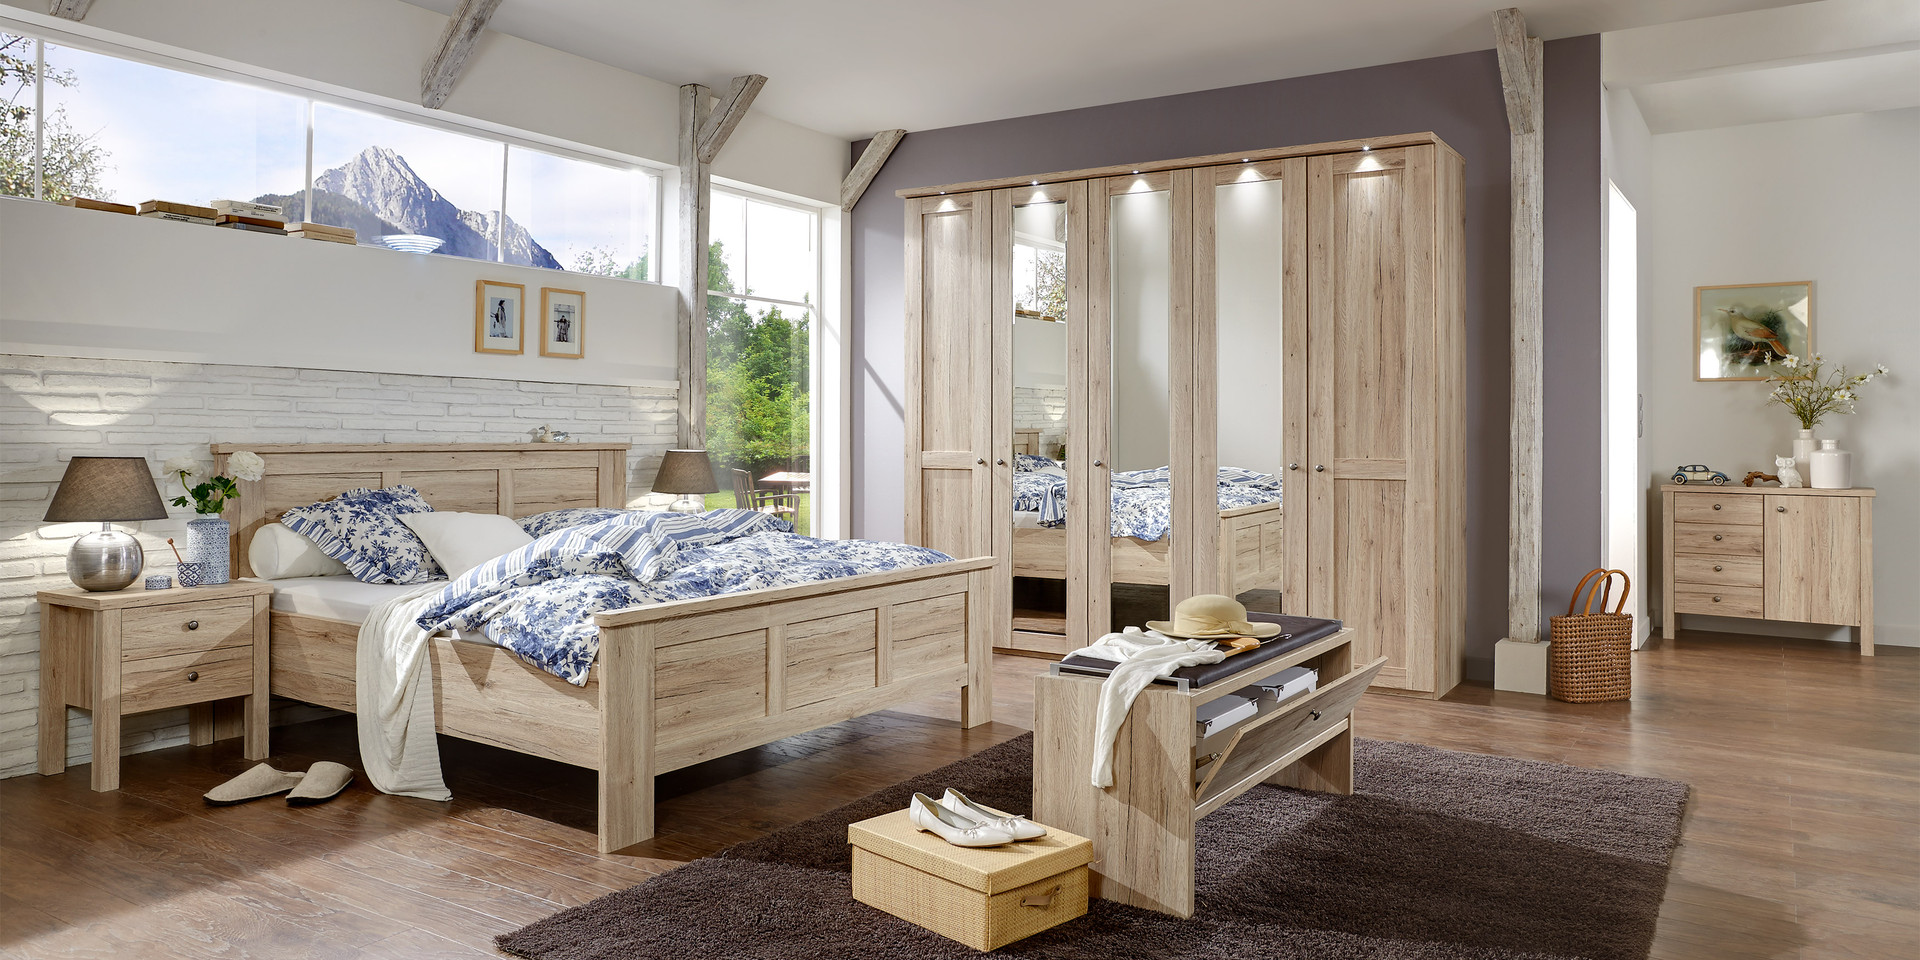 erleben sie das schlafzimmer bergamo m belhersteller wiemann. Black Bedroom Furniture Sets. Home Design Ideas